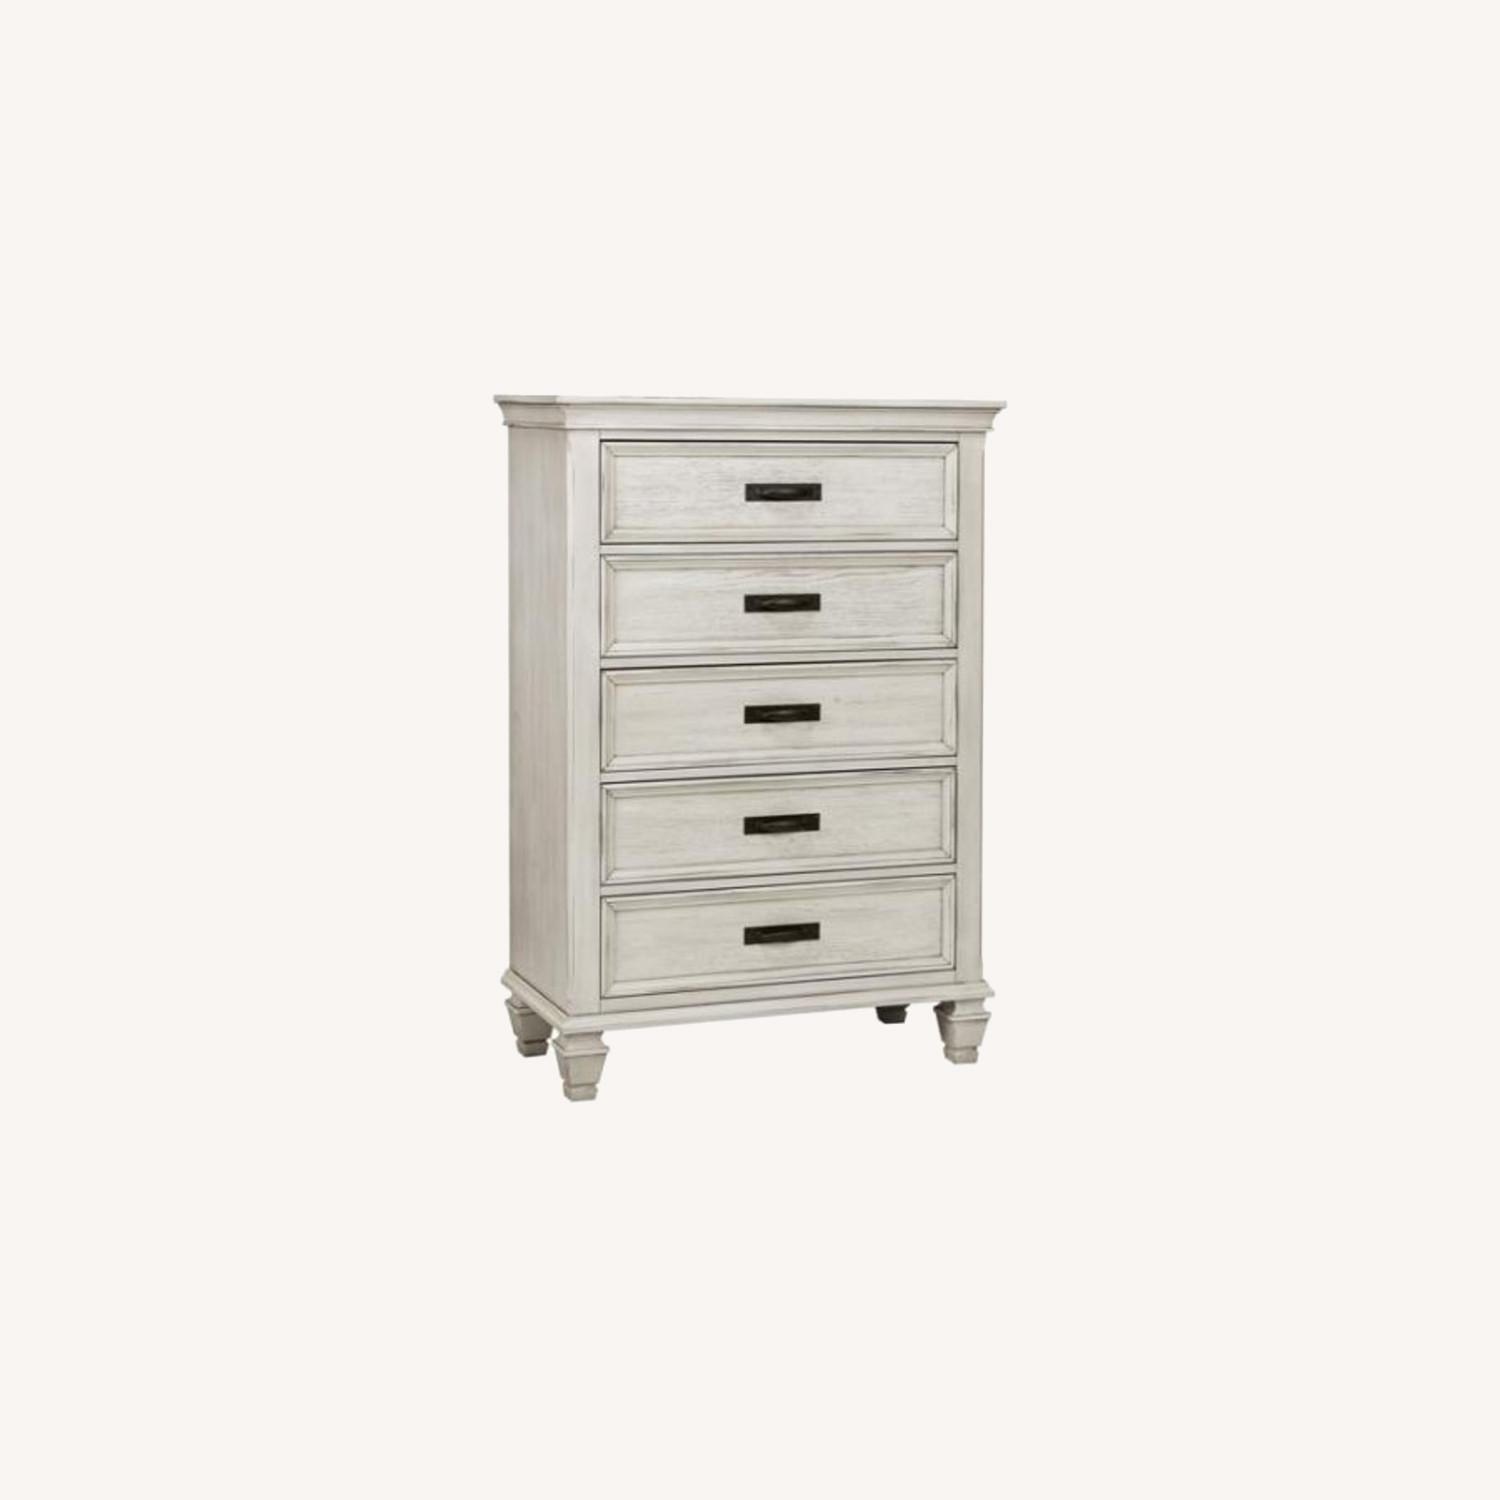 Chest In Warm Antique White Finish W/ Grey Accents - image-4